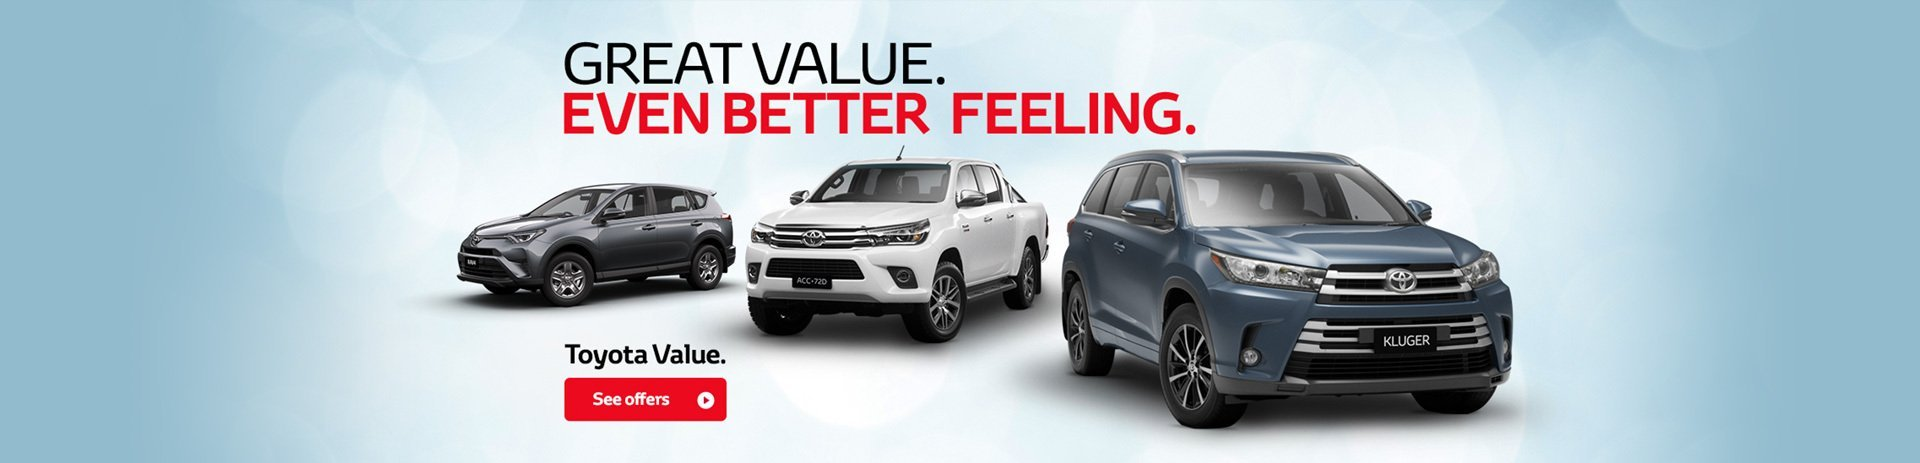 Toyota - Nation Offer - Great Value..